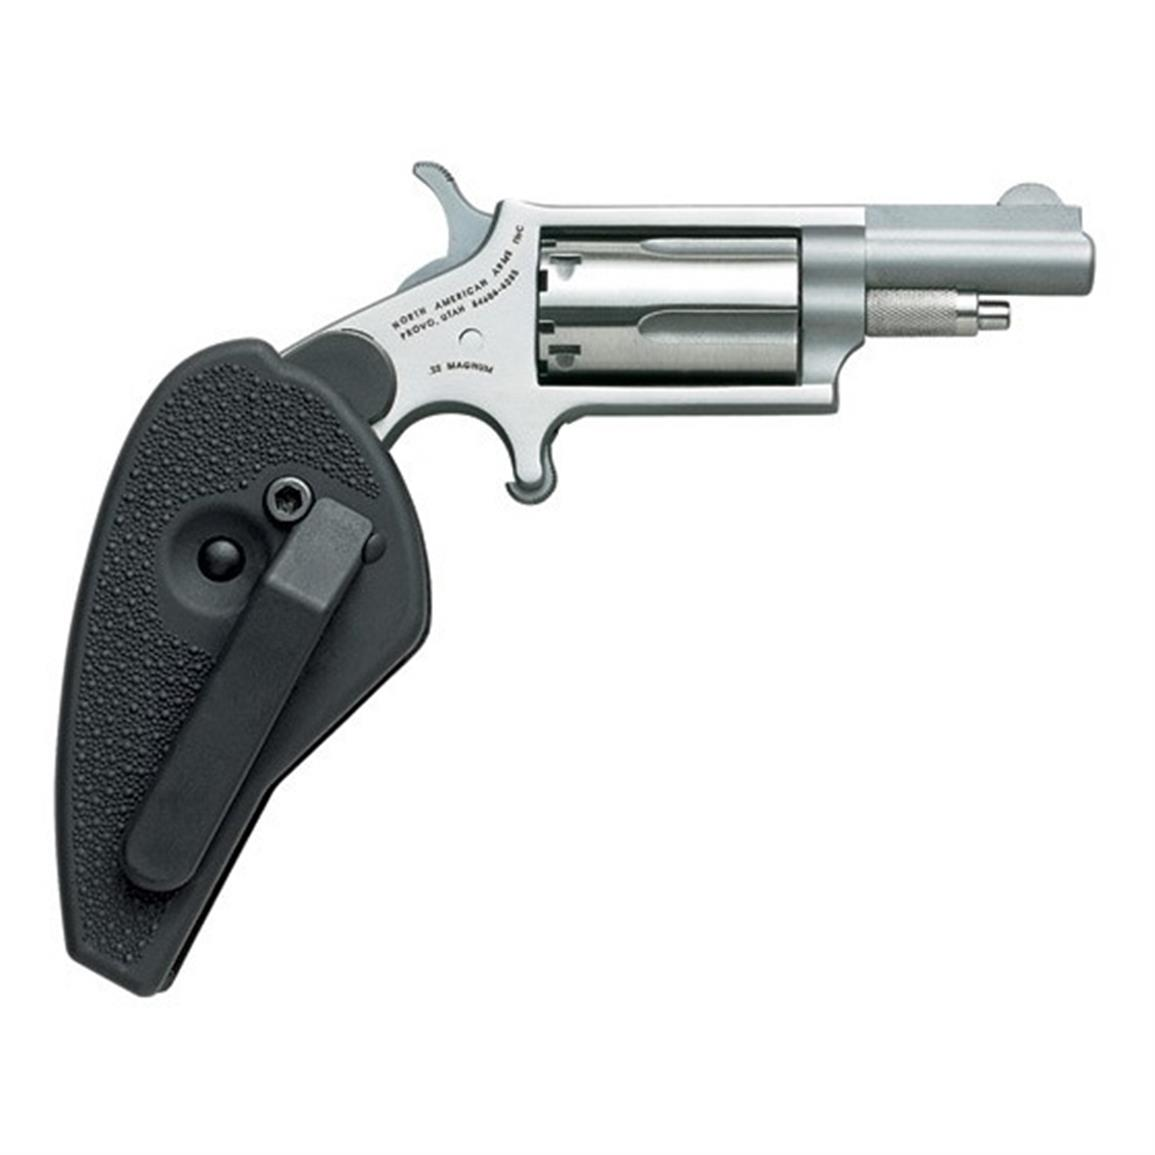 "NAA Holster Grip with Conversion Cylinder, Revolver, .22 Magnum, Rimfire, 1.625"" Barrel, 5 Rounds"